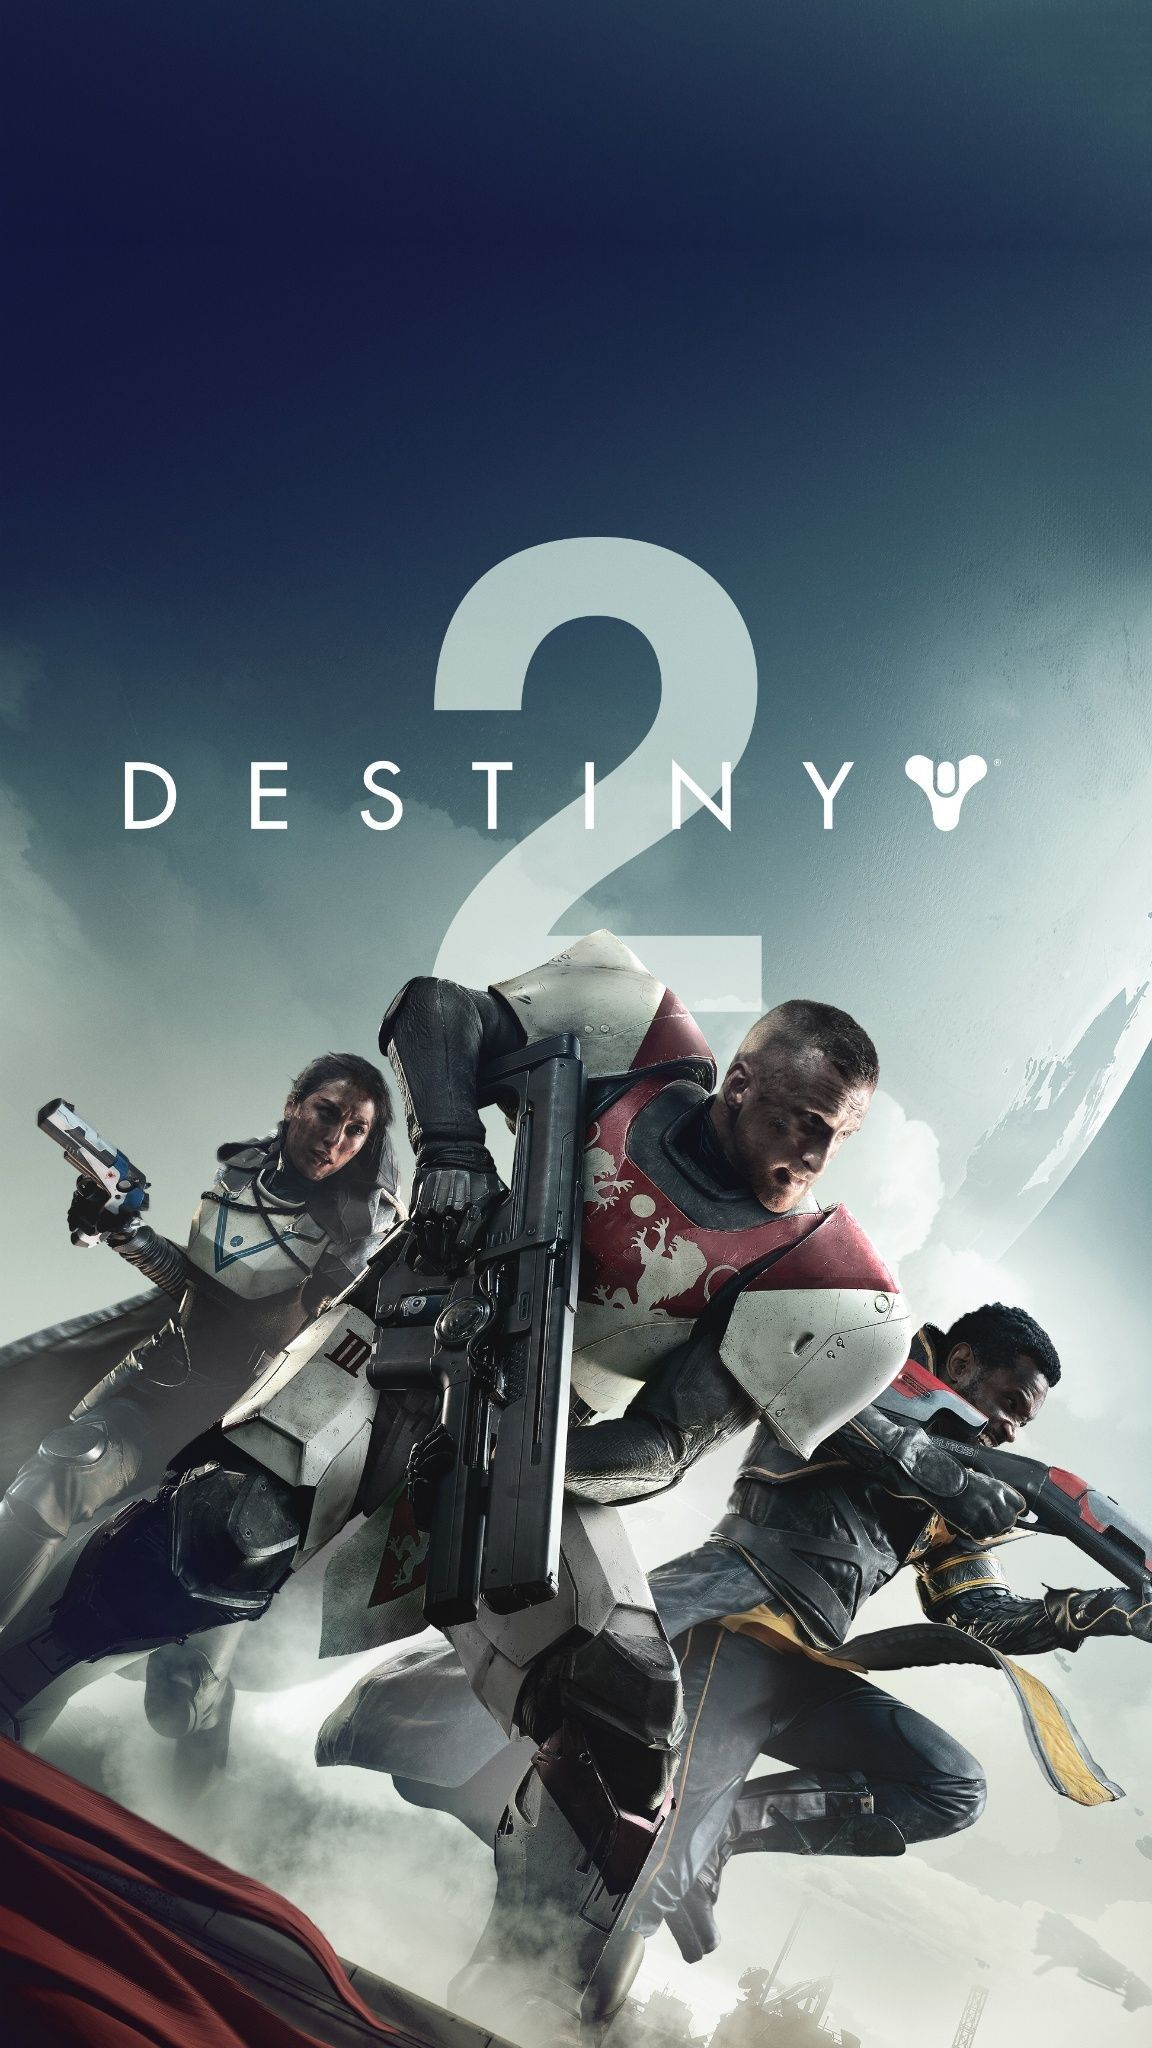 Lovely Destiny Wallpaper iPhone Check more at https